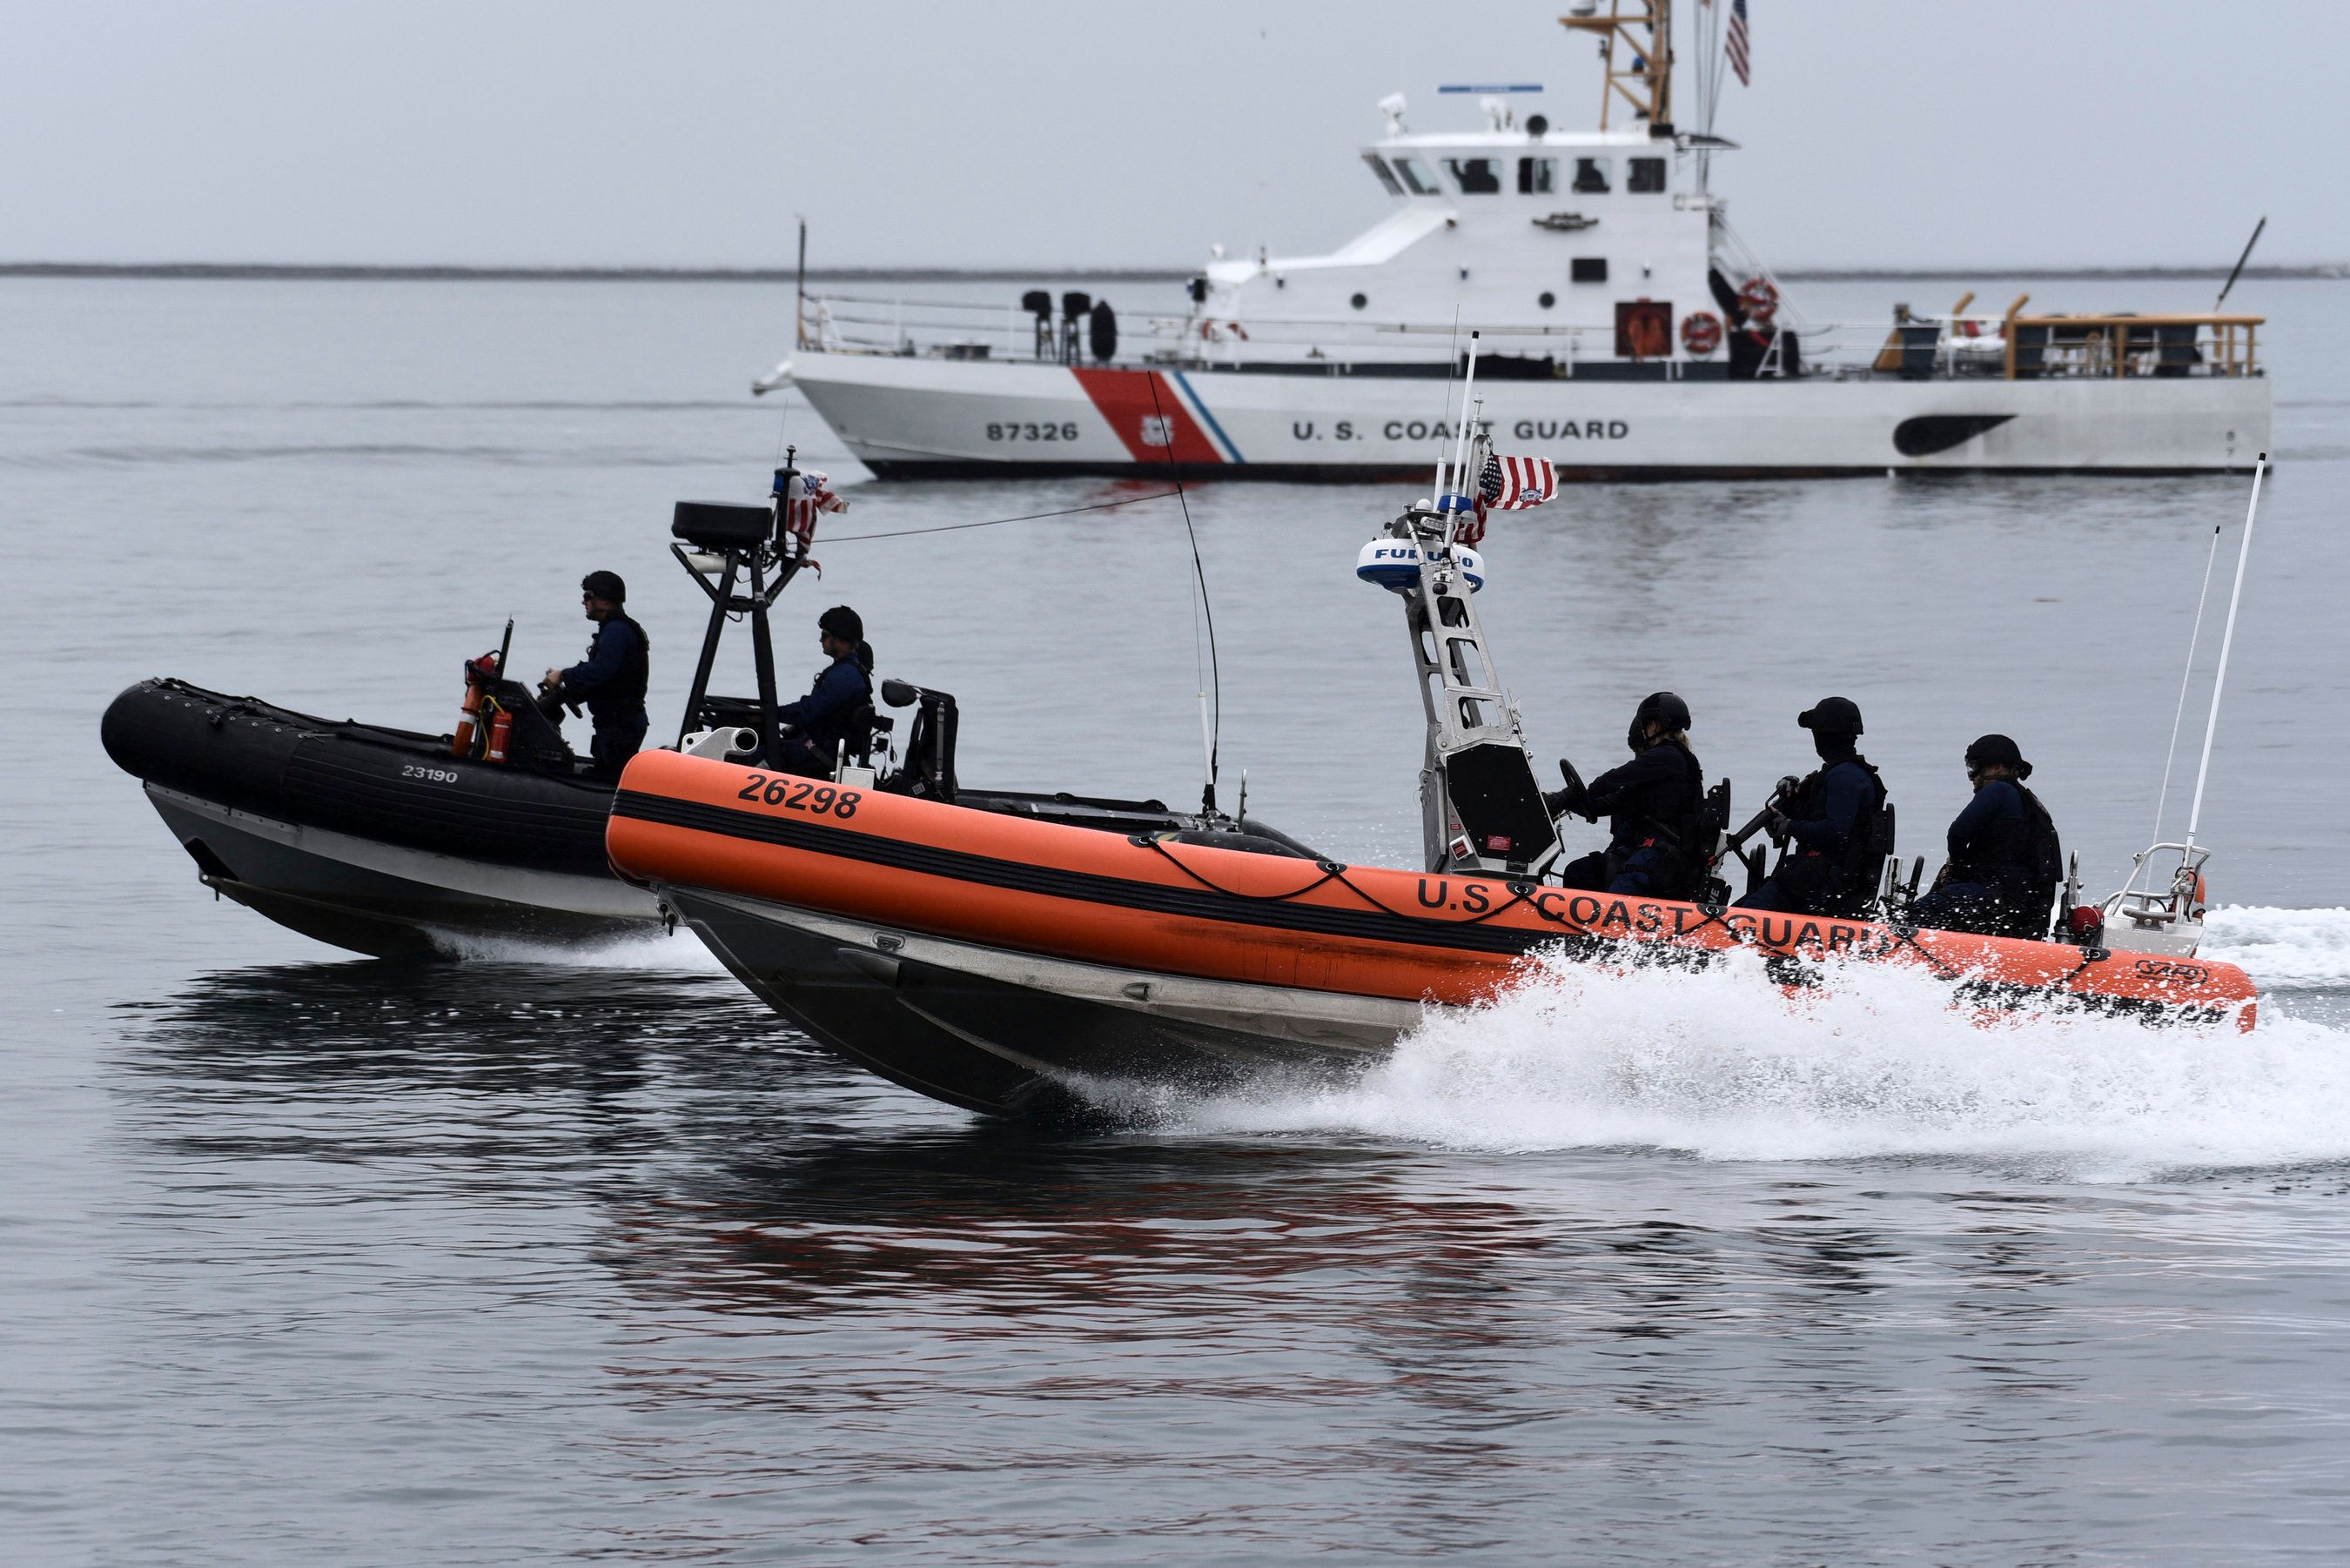 U.S. Coast Guard Maritime Security Response Team-West crew members conduct a tactical demonstration in the Port of Los Angeles, Thursday, March 21, 2019. Strapped with an aging fleet, the U.S. Coast Guard is about to award a contract for a much-needed new icebreaker to help compete against Russia and China for a presence in the Arctic, but the service needs more funding for operations and infrastructure, its commandant said Thursday. (Seaman Ryan Estrada/U.S. Coast Guard via AP)